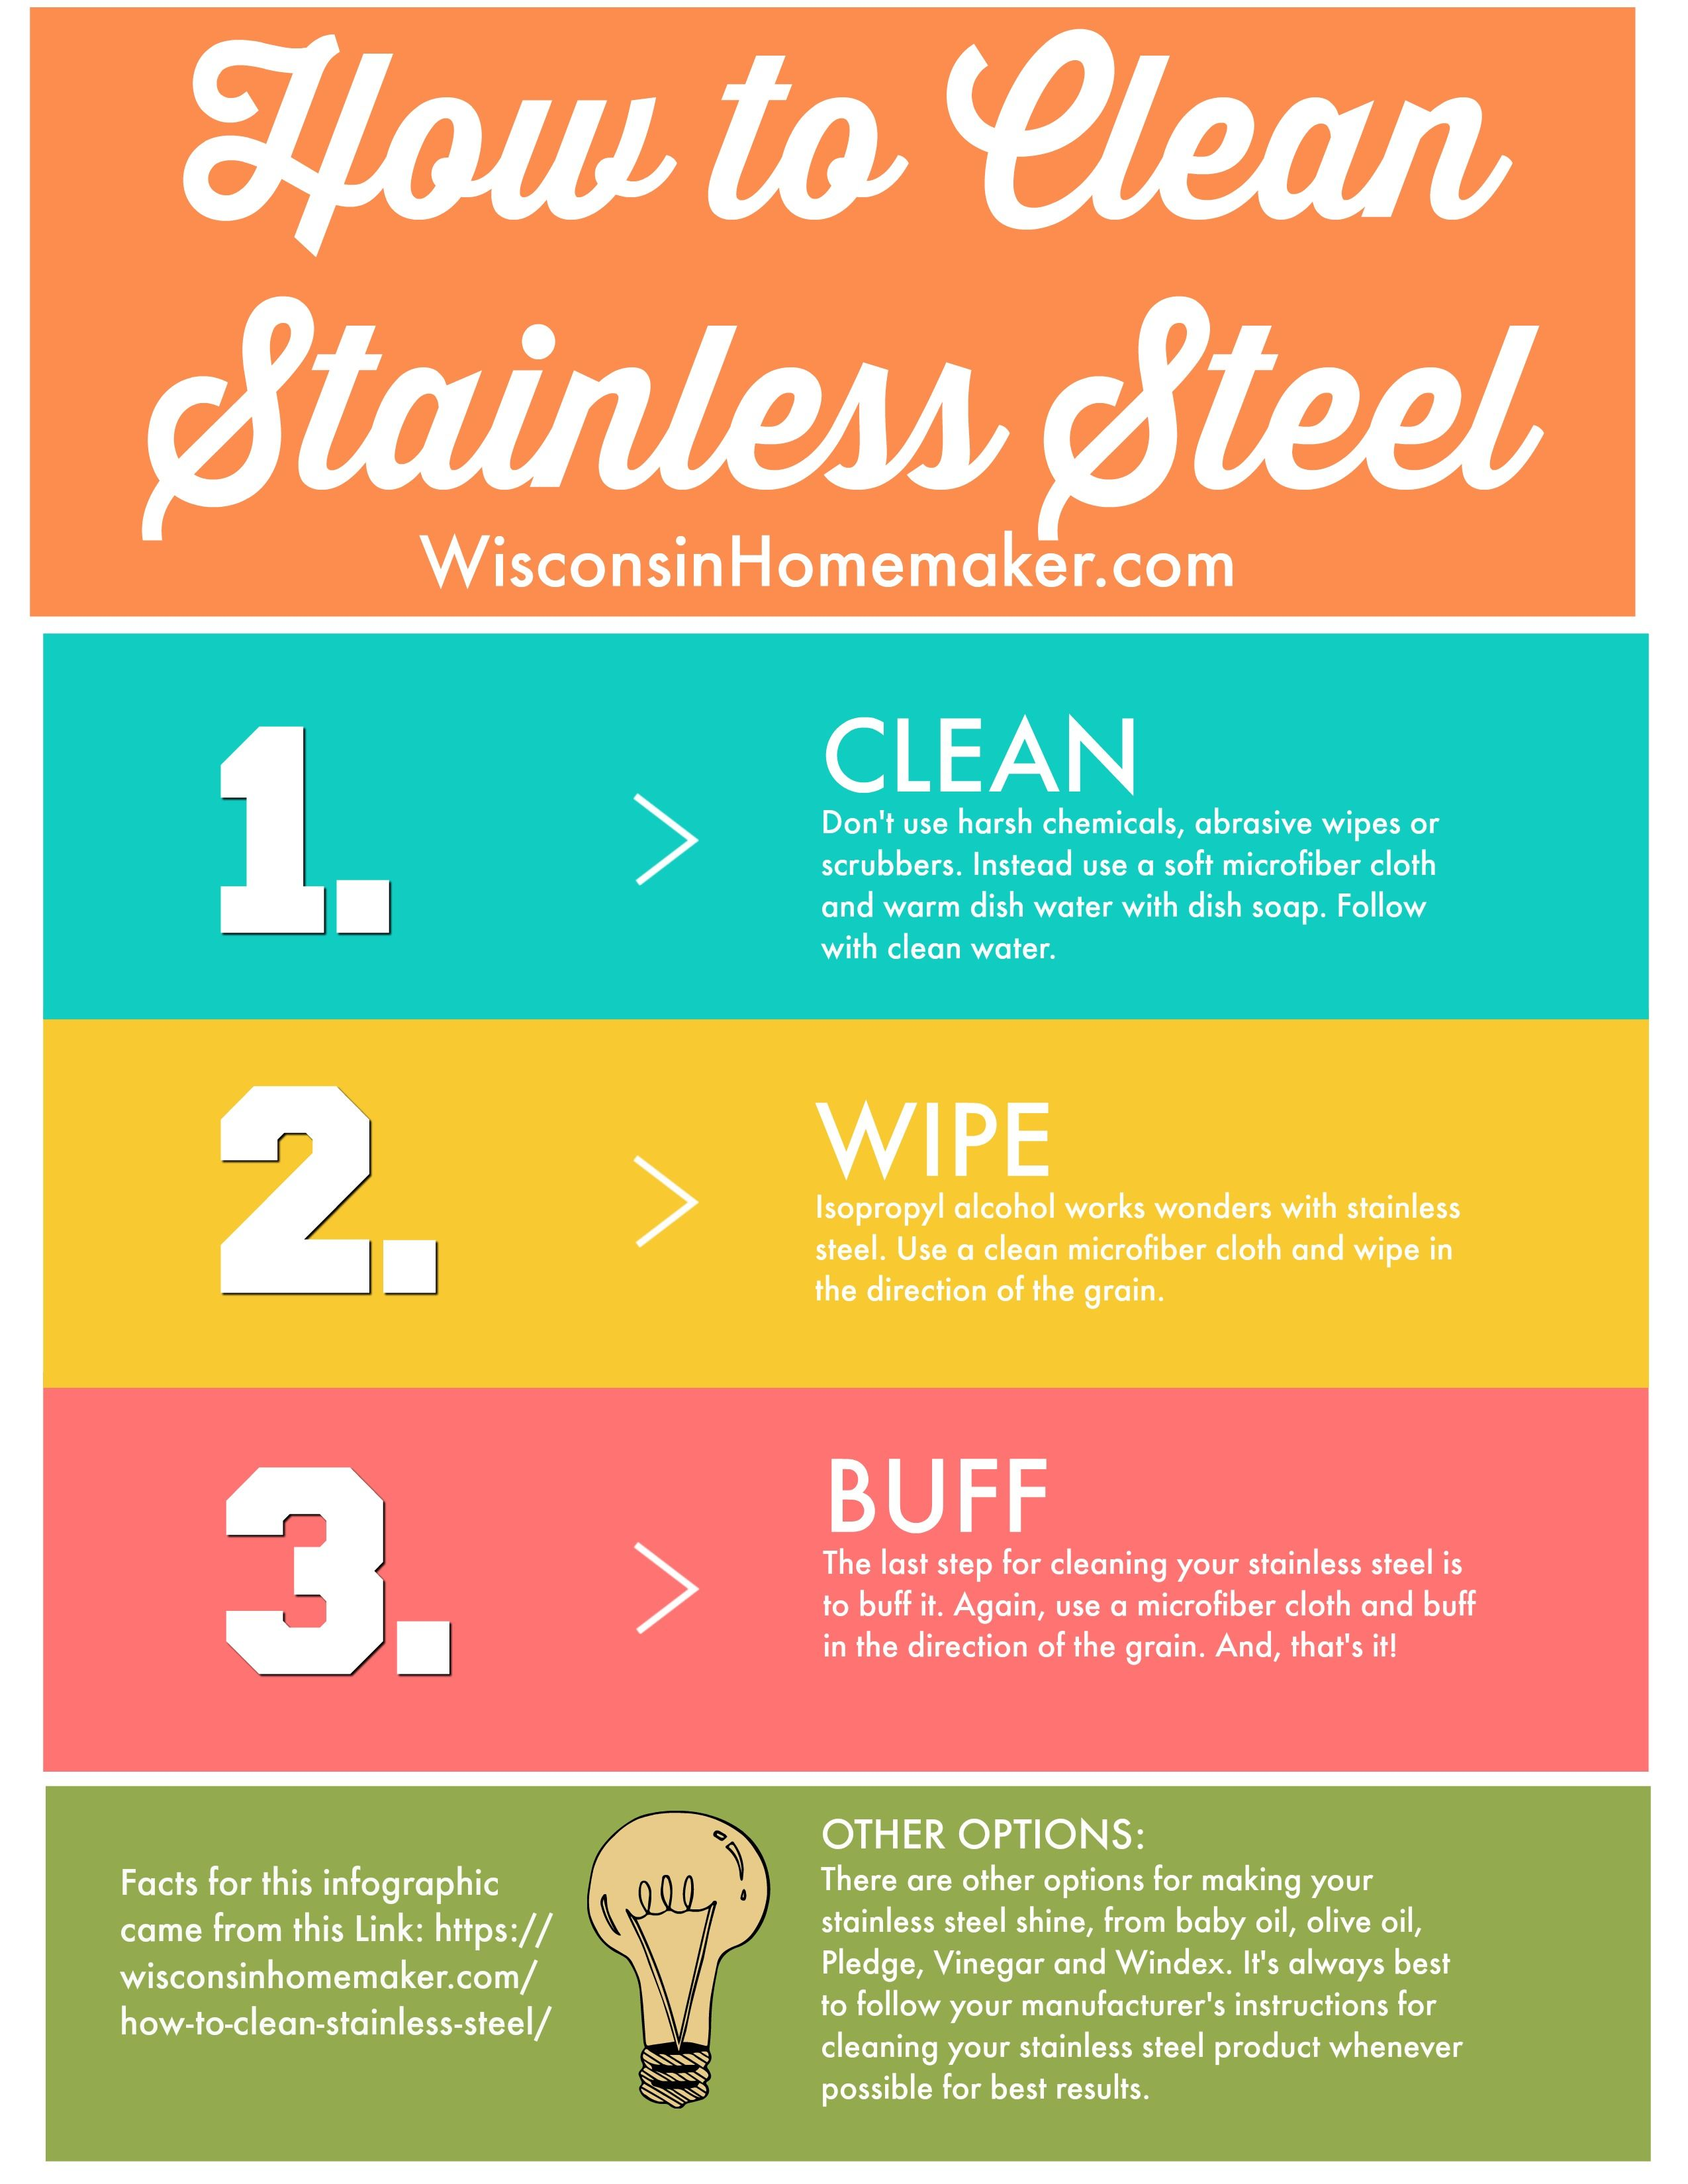 How To Clean Stainless Steel Stainless Steel Cleaning Microfiber Wipes Clean Microfiber